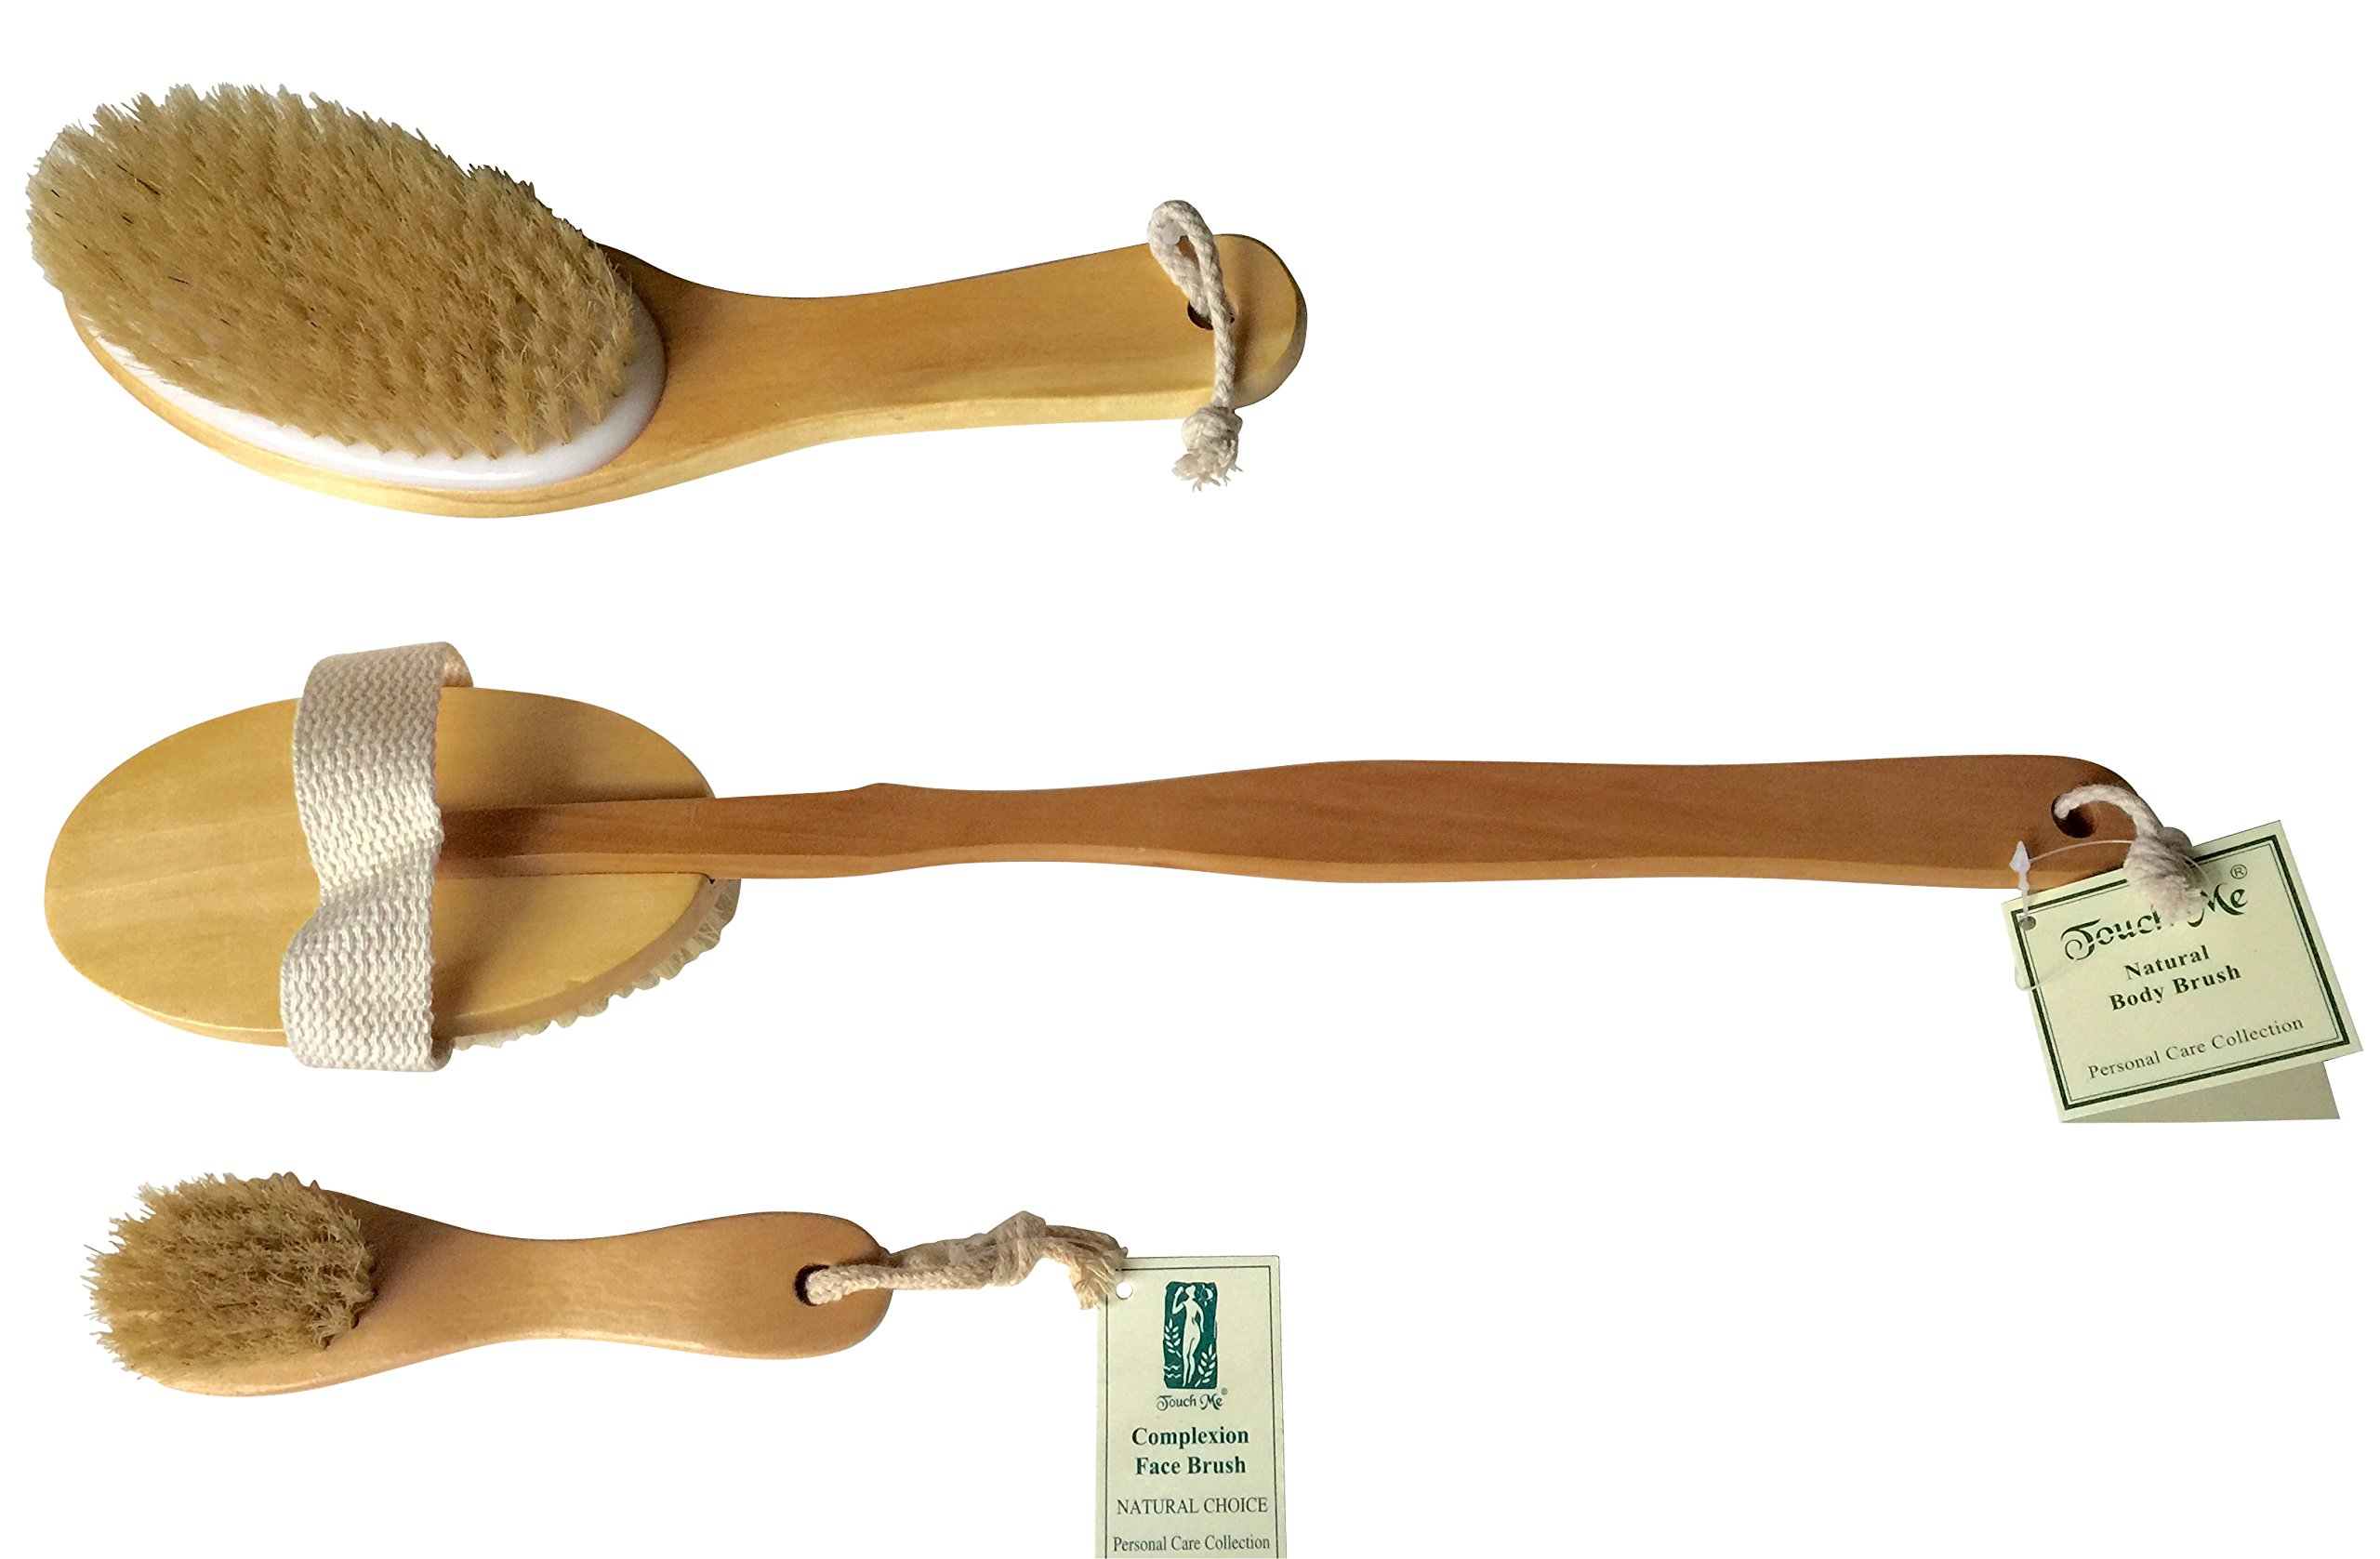 3 Brushes/Set Touch Me 100% Natural Boar Bristle detachable Long Handle Wooden Dry Bath Body Back Brush, Contour Handle Dry Body Brush and Facial Complexion Brush, Premium Quality, Perfect Spa Gift by Touch Me (Image #2)